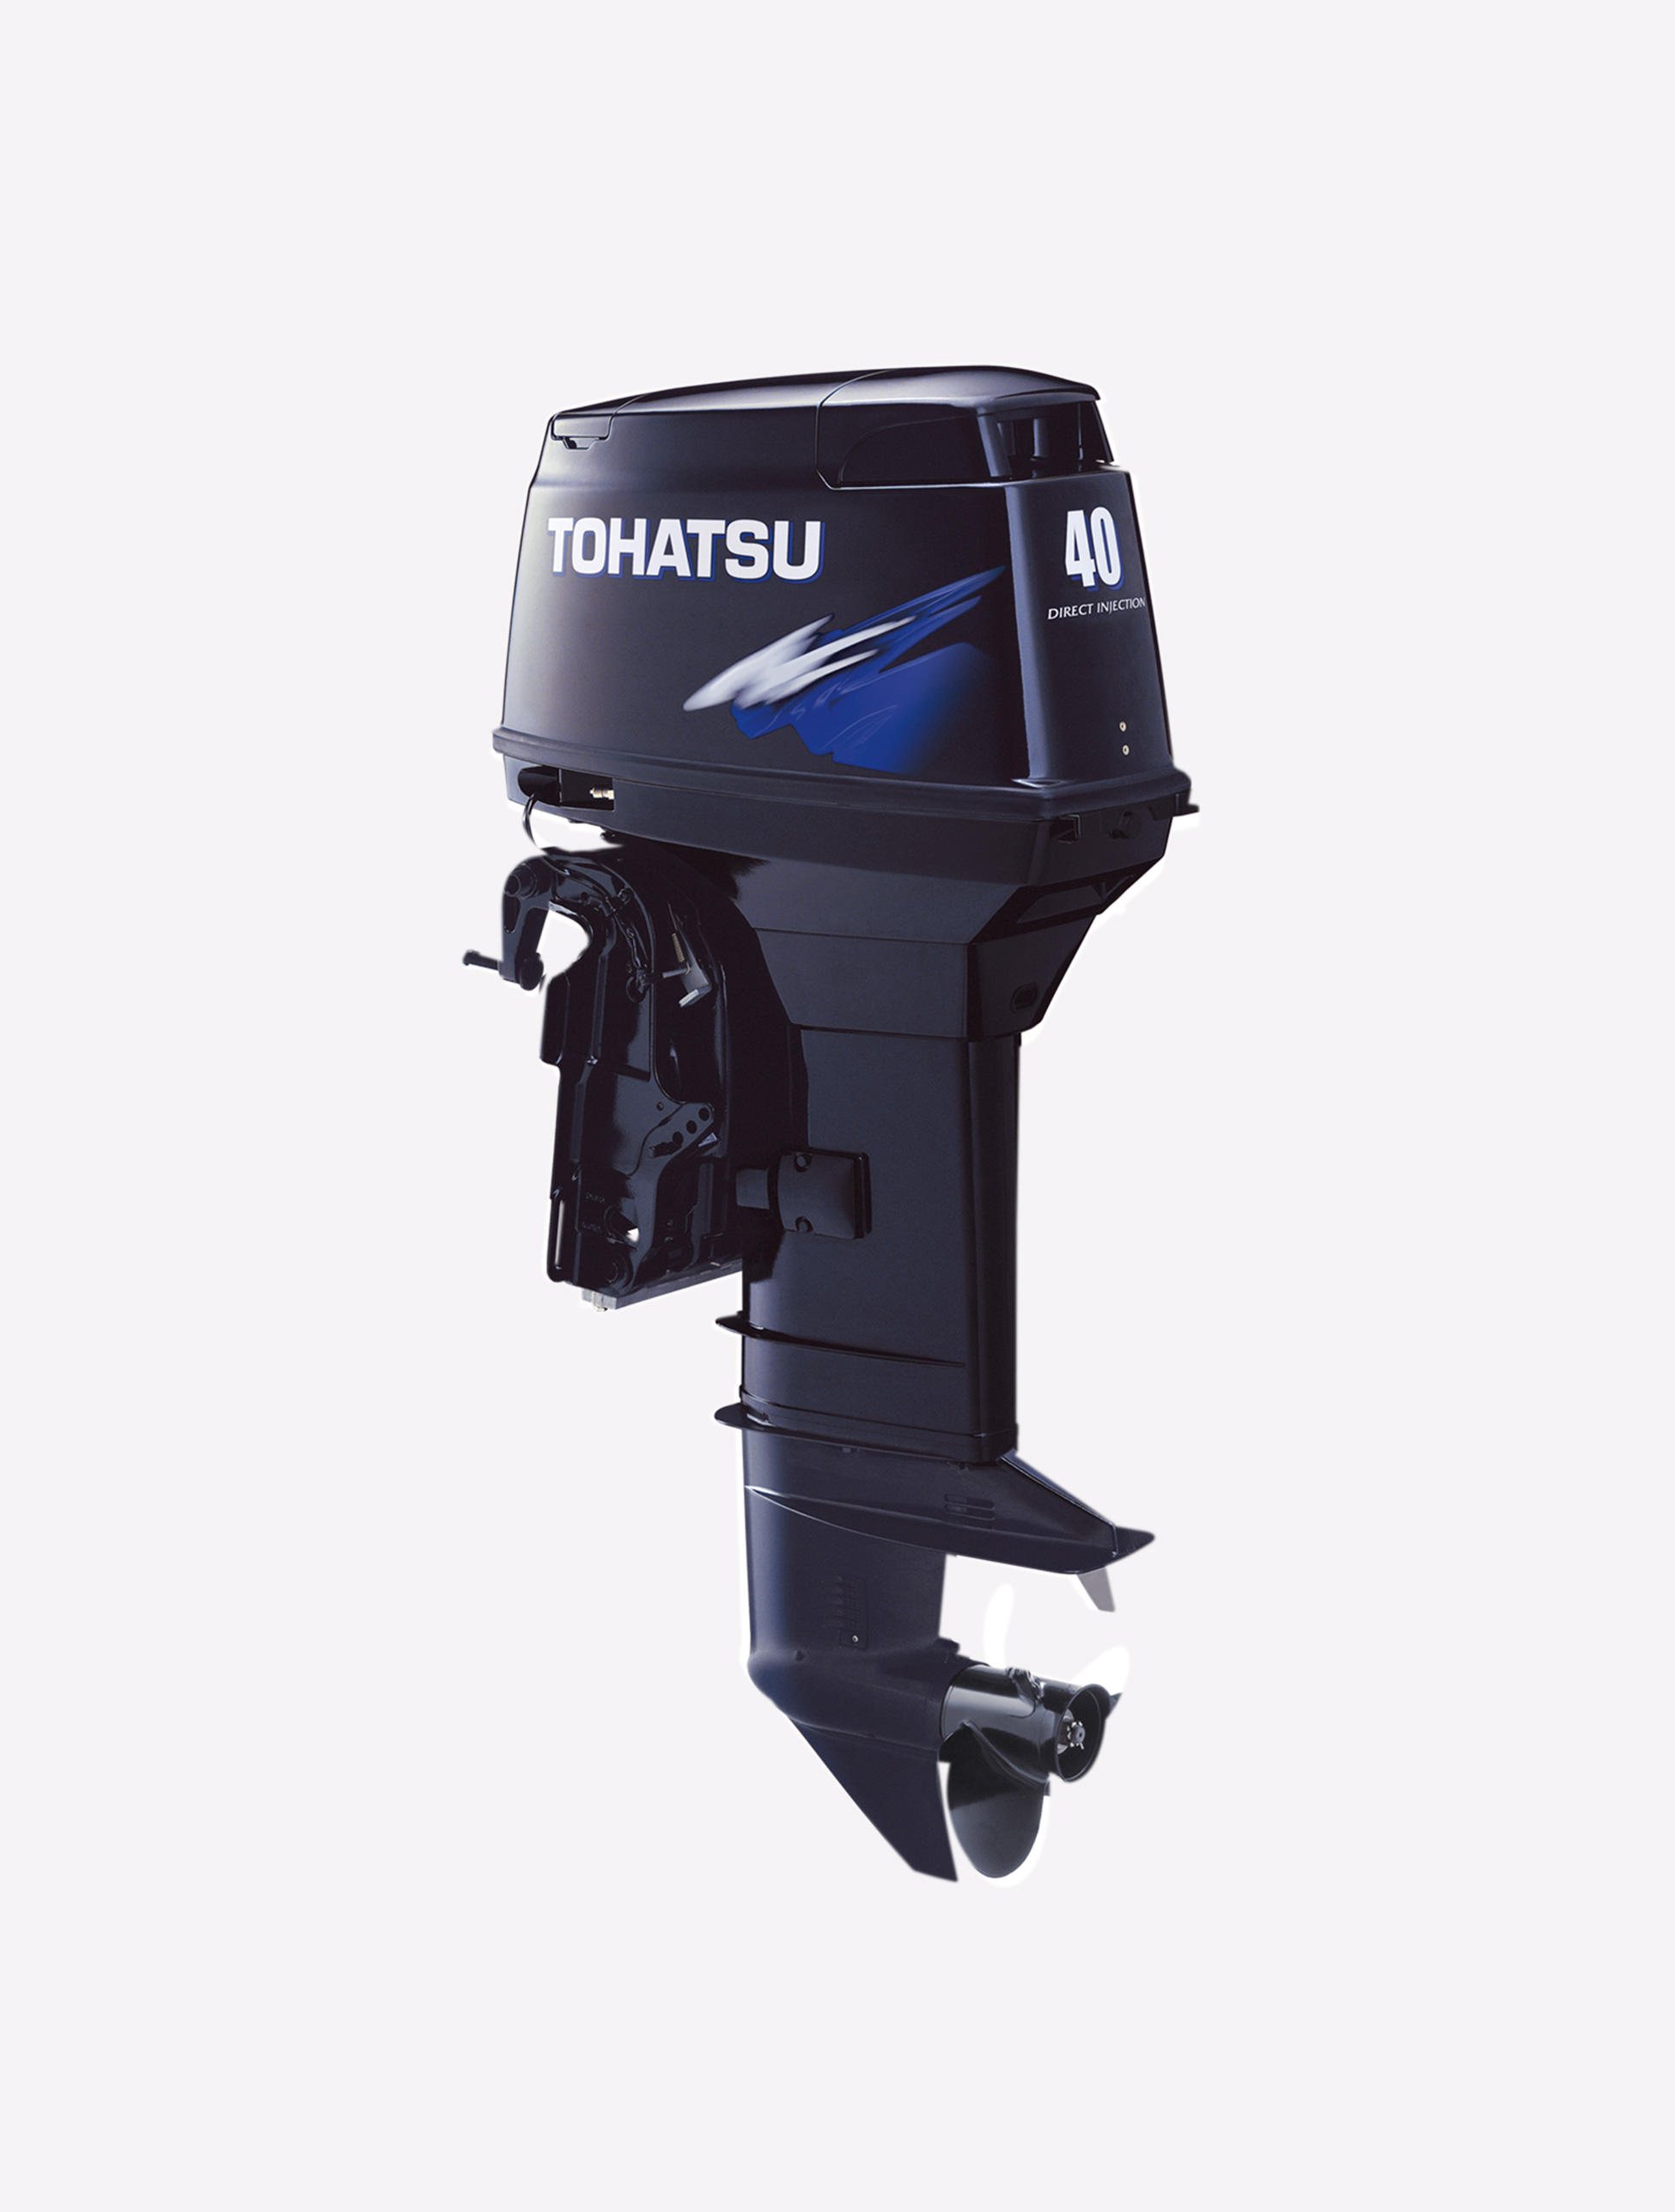 Md40 mid range outboards tohatsu outboard motors for Tohatsu outboard motors online